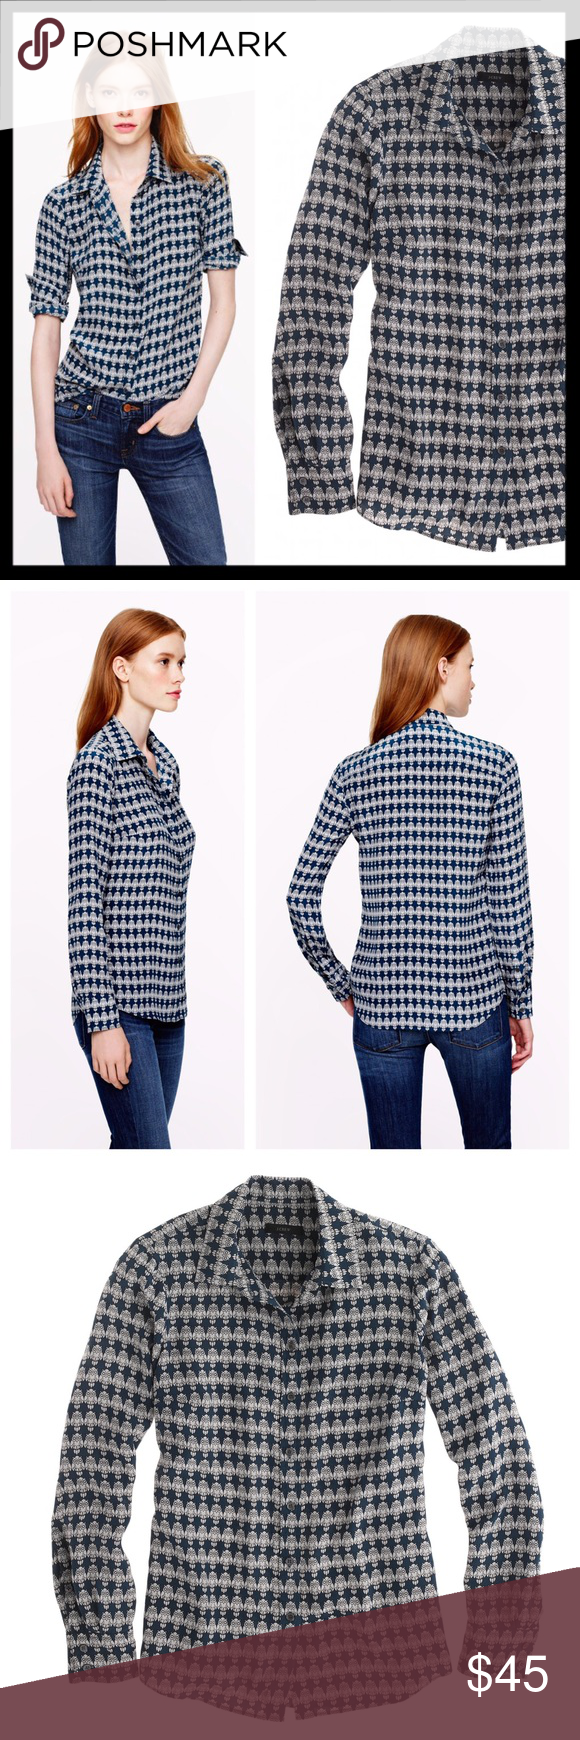 2ab4c2f5 j. crew // silk owl print boy button down blouse Super drapey and fluid,  it's what to wear when you're craving a little more polish than your  classic oxford ...